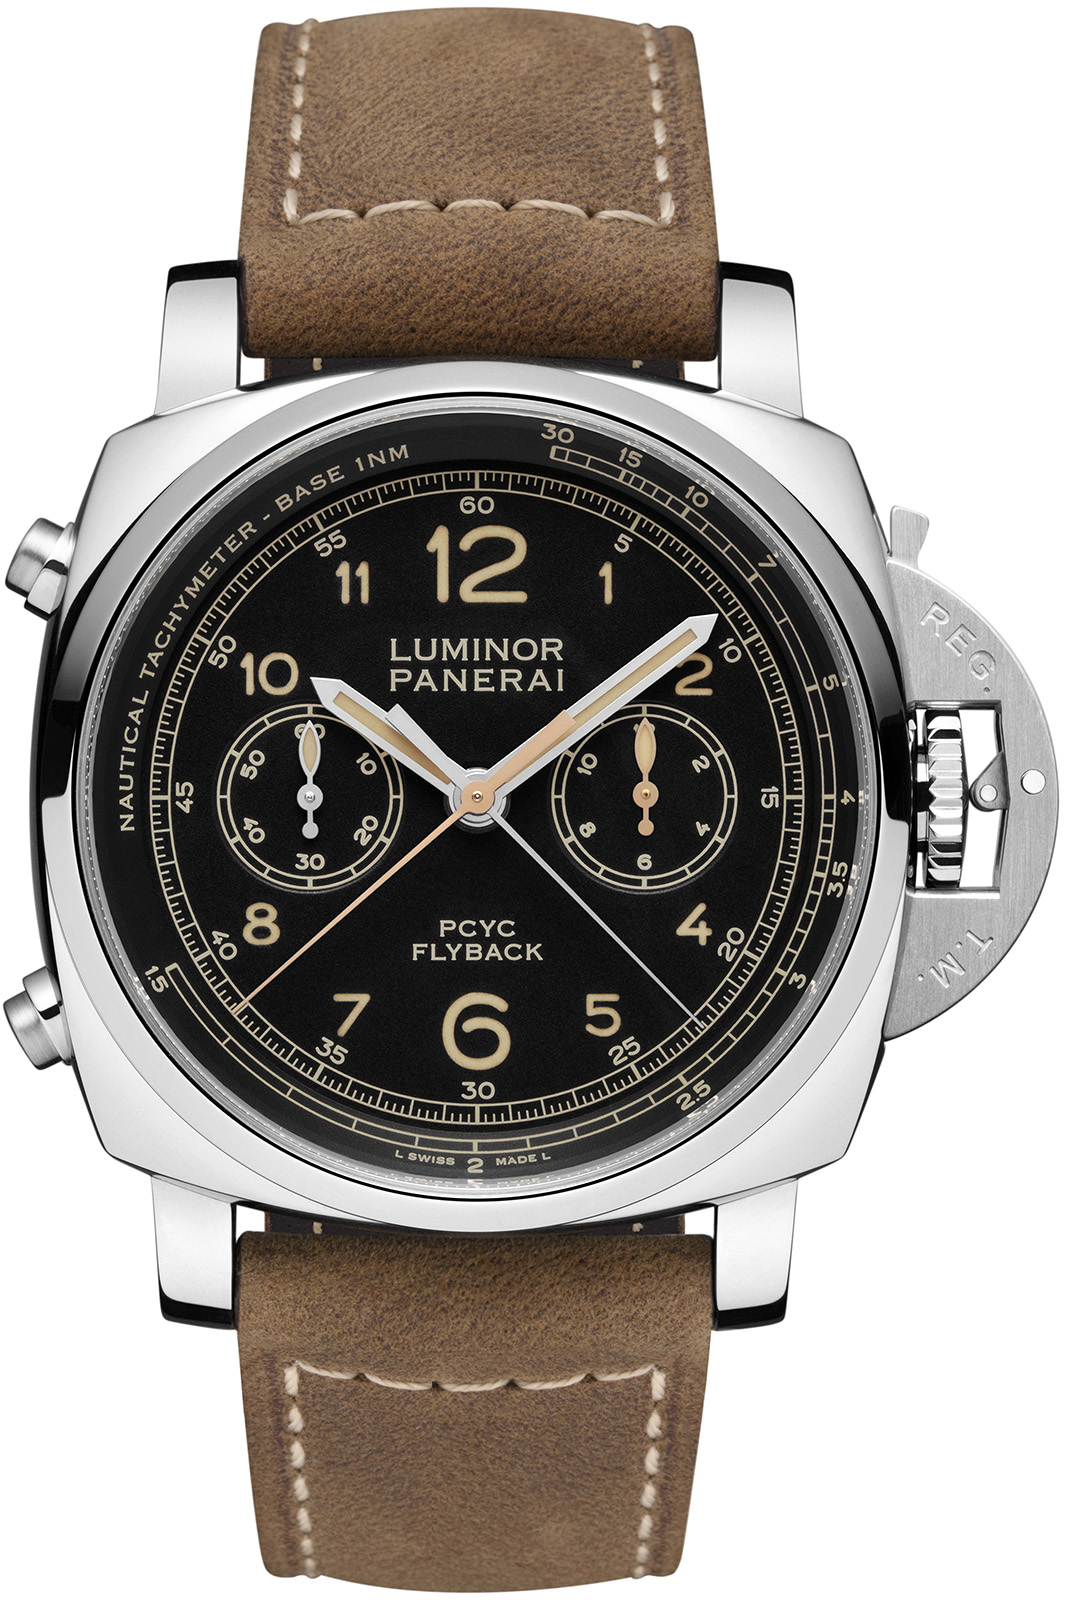 Panerai Luminor 1950 PCYC 3 Days Chrono Flyback Automatic Pam653